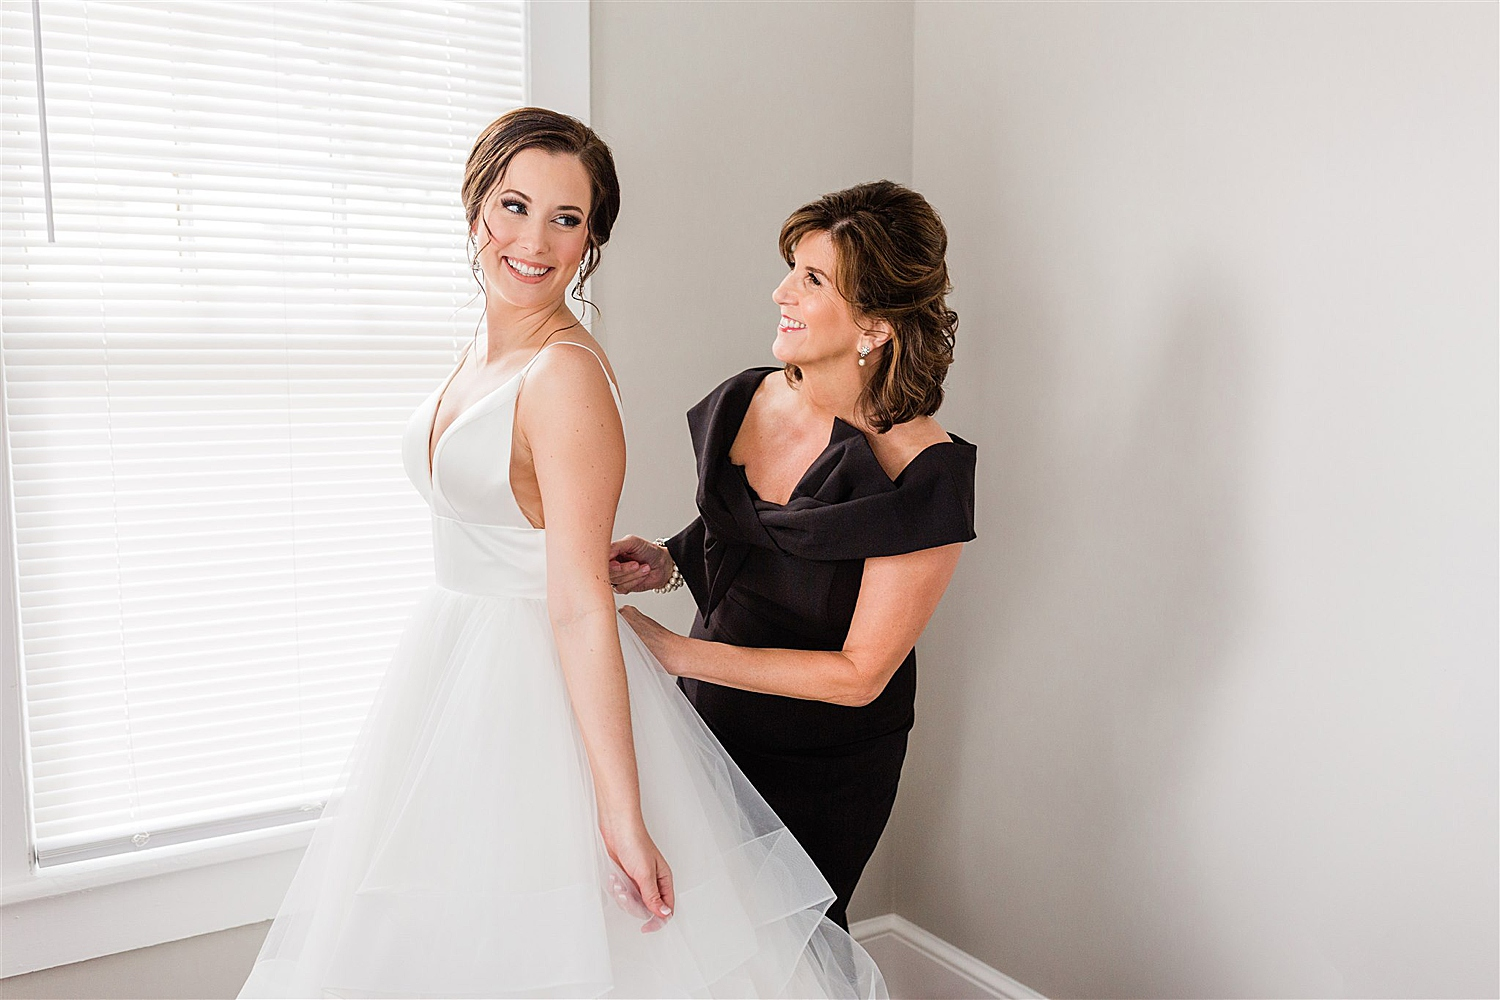 Bride's mom smiling and helping her put on her wedding dress